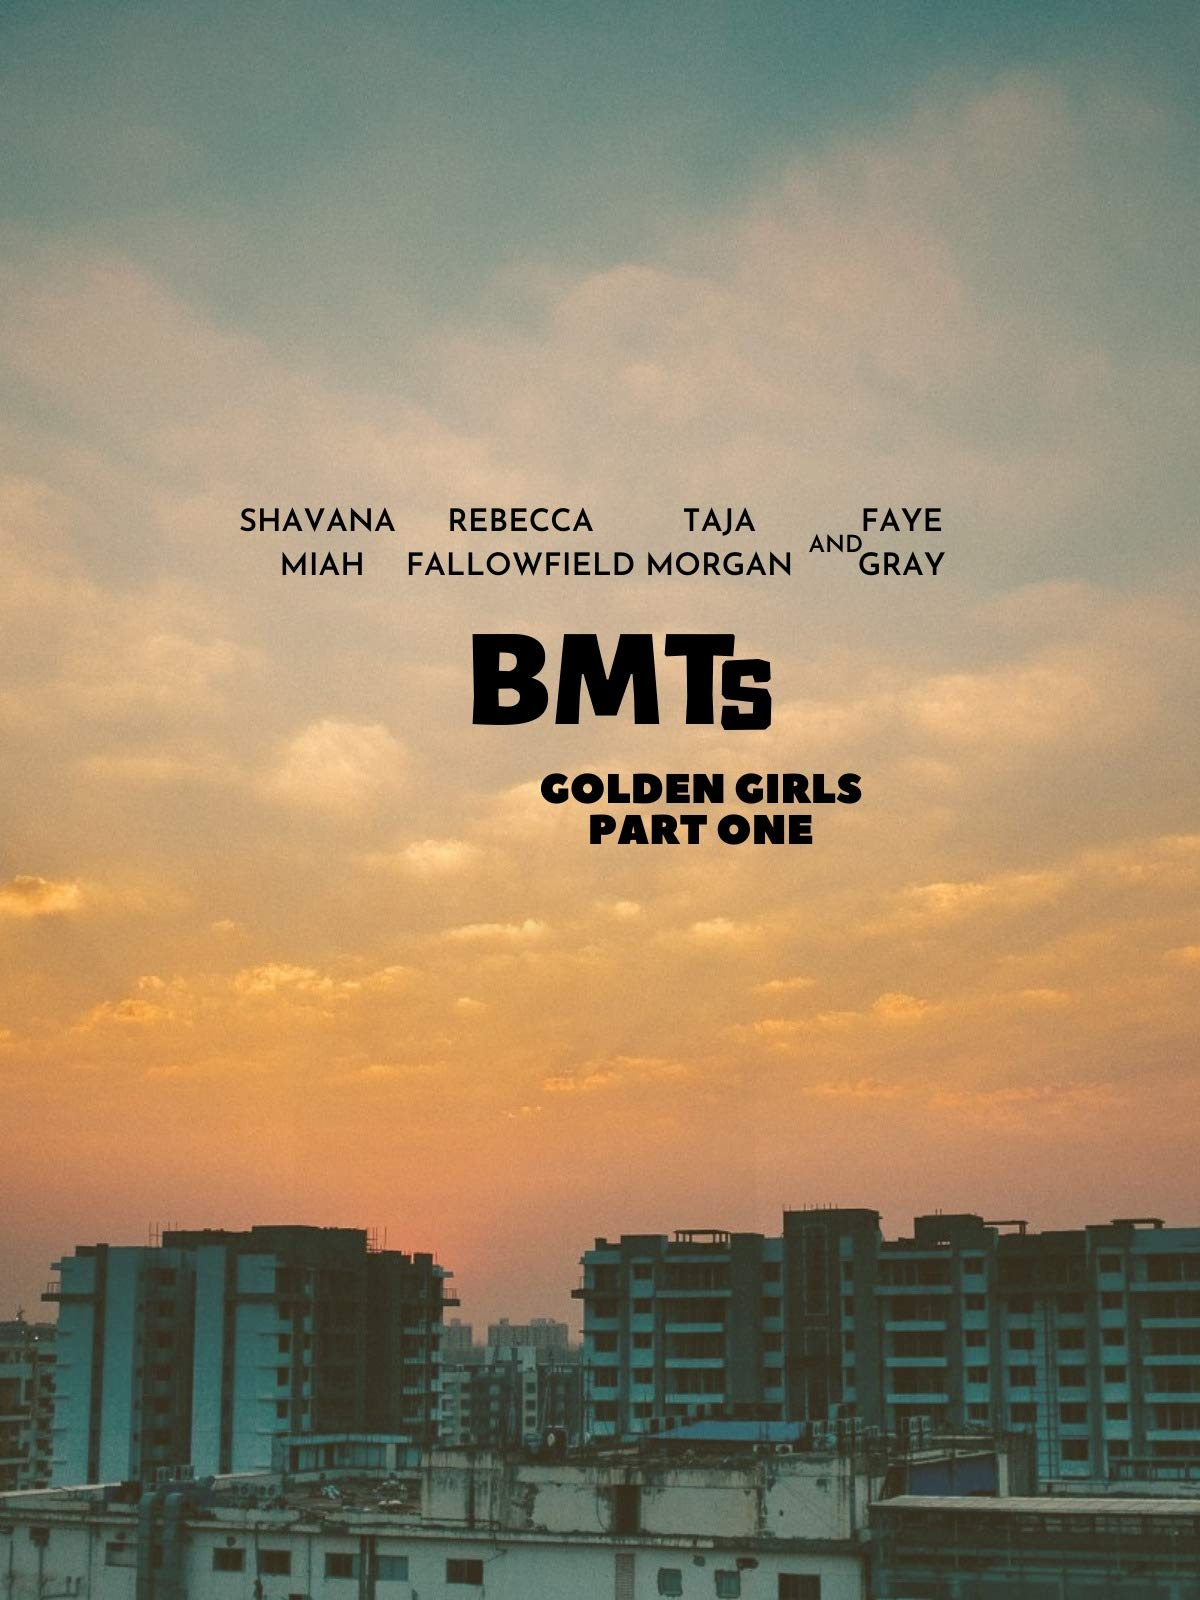 B.M.Ts Golden Girls Part One